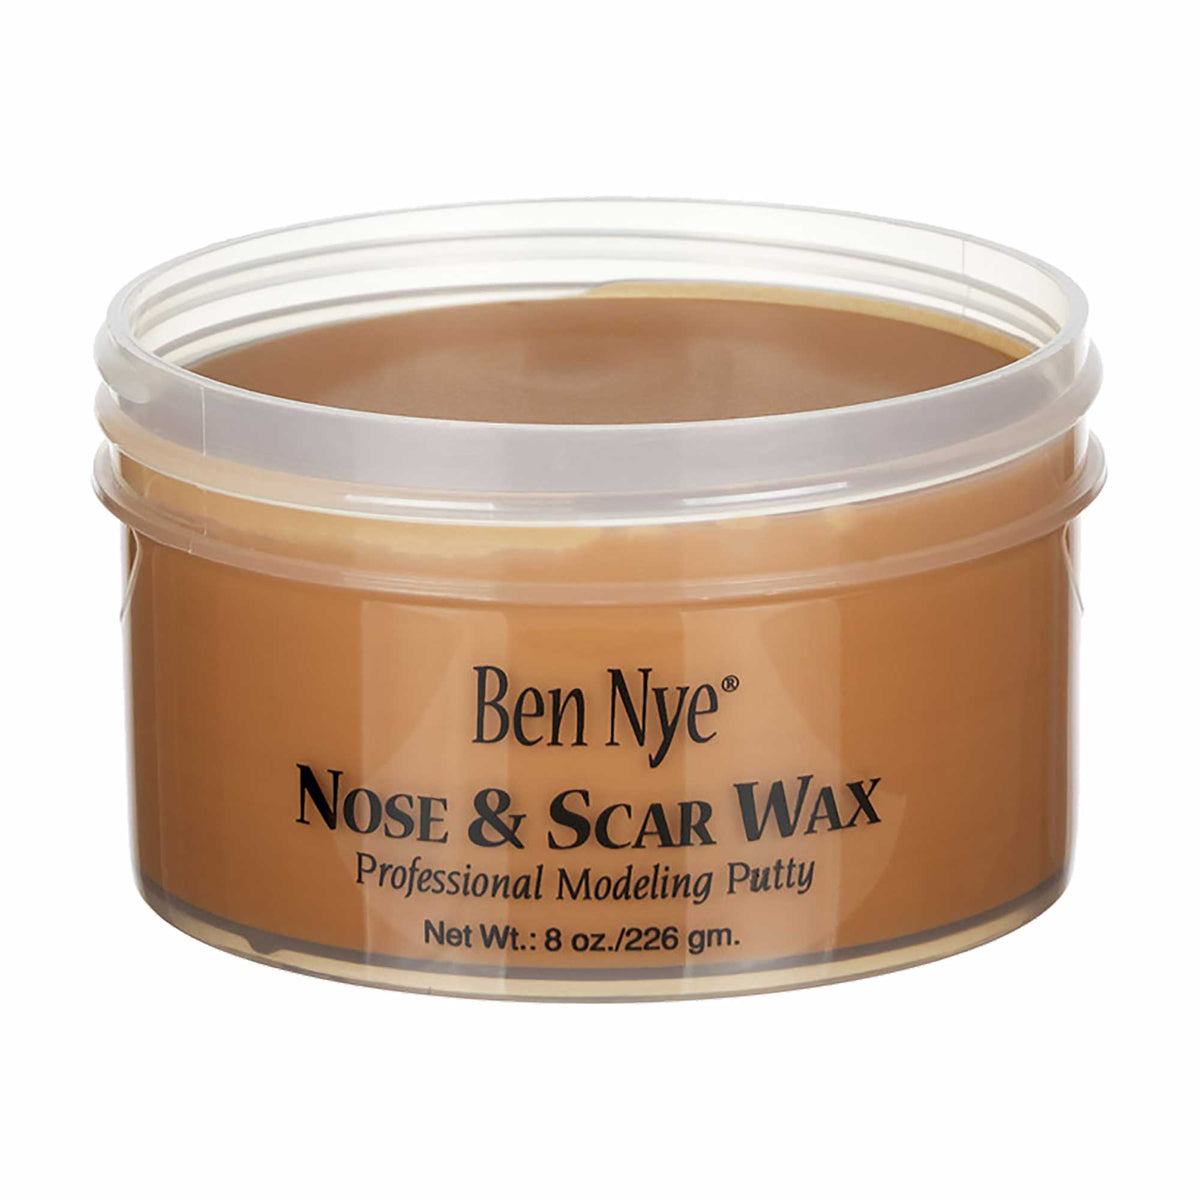 Ben Nye Nose & Scar Wax - Professional Modelling Putty